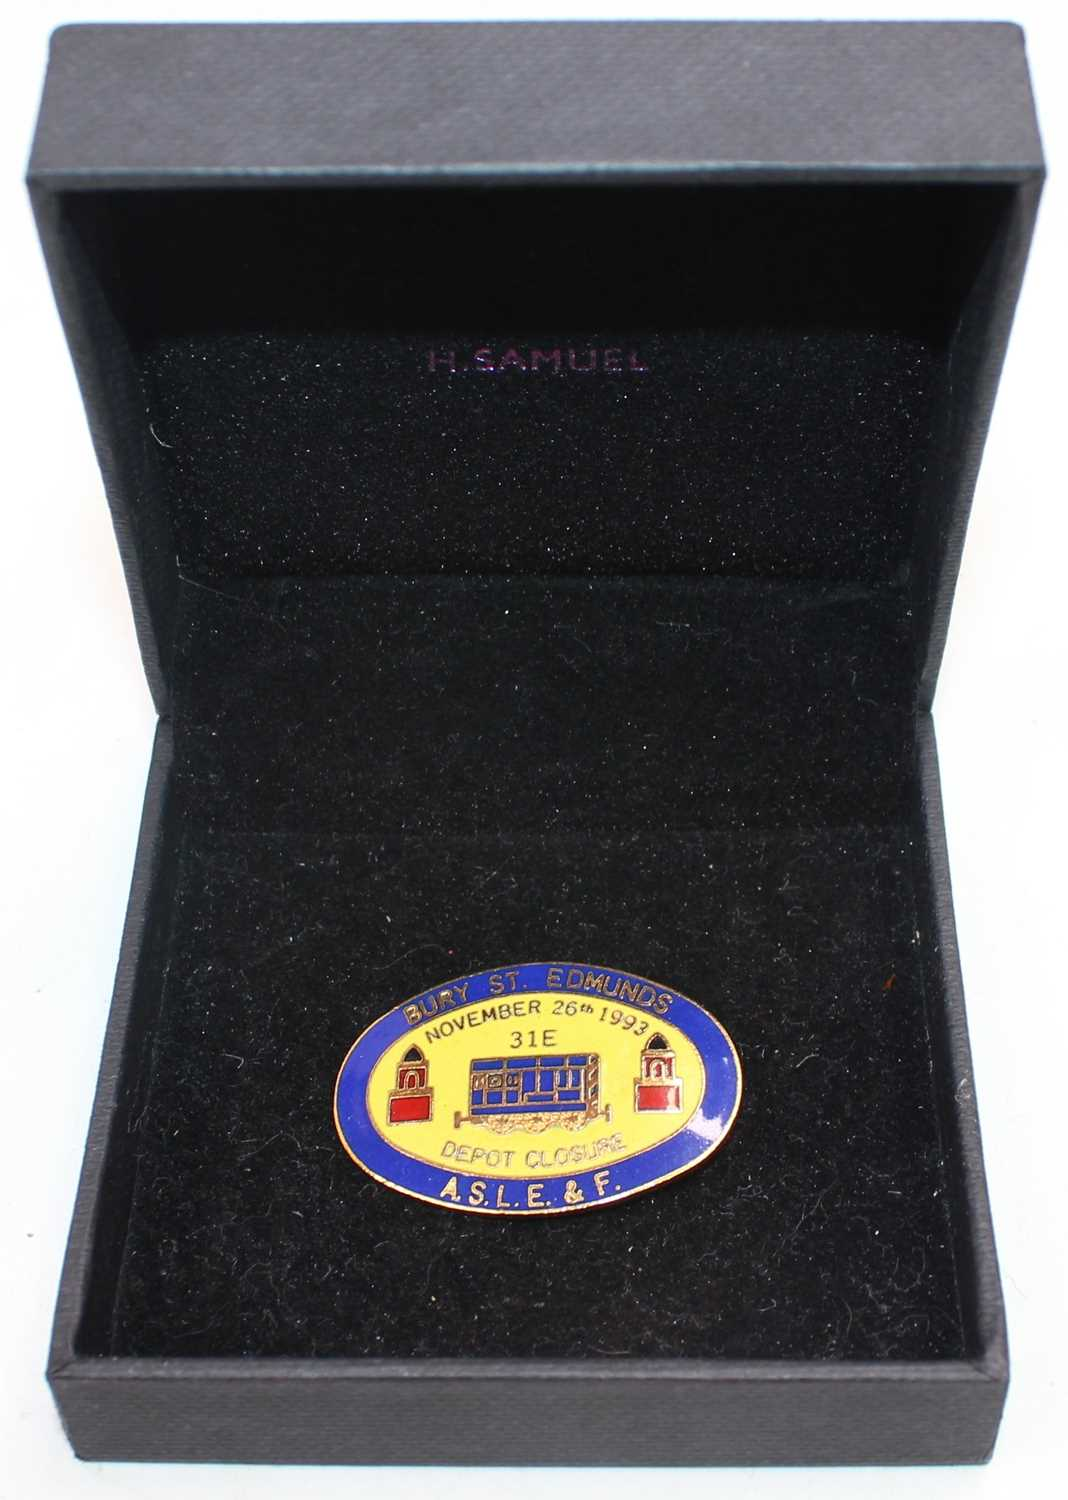 Lot 54 - Collectable enamel ASLE&F badge for the...